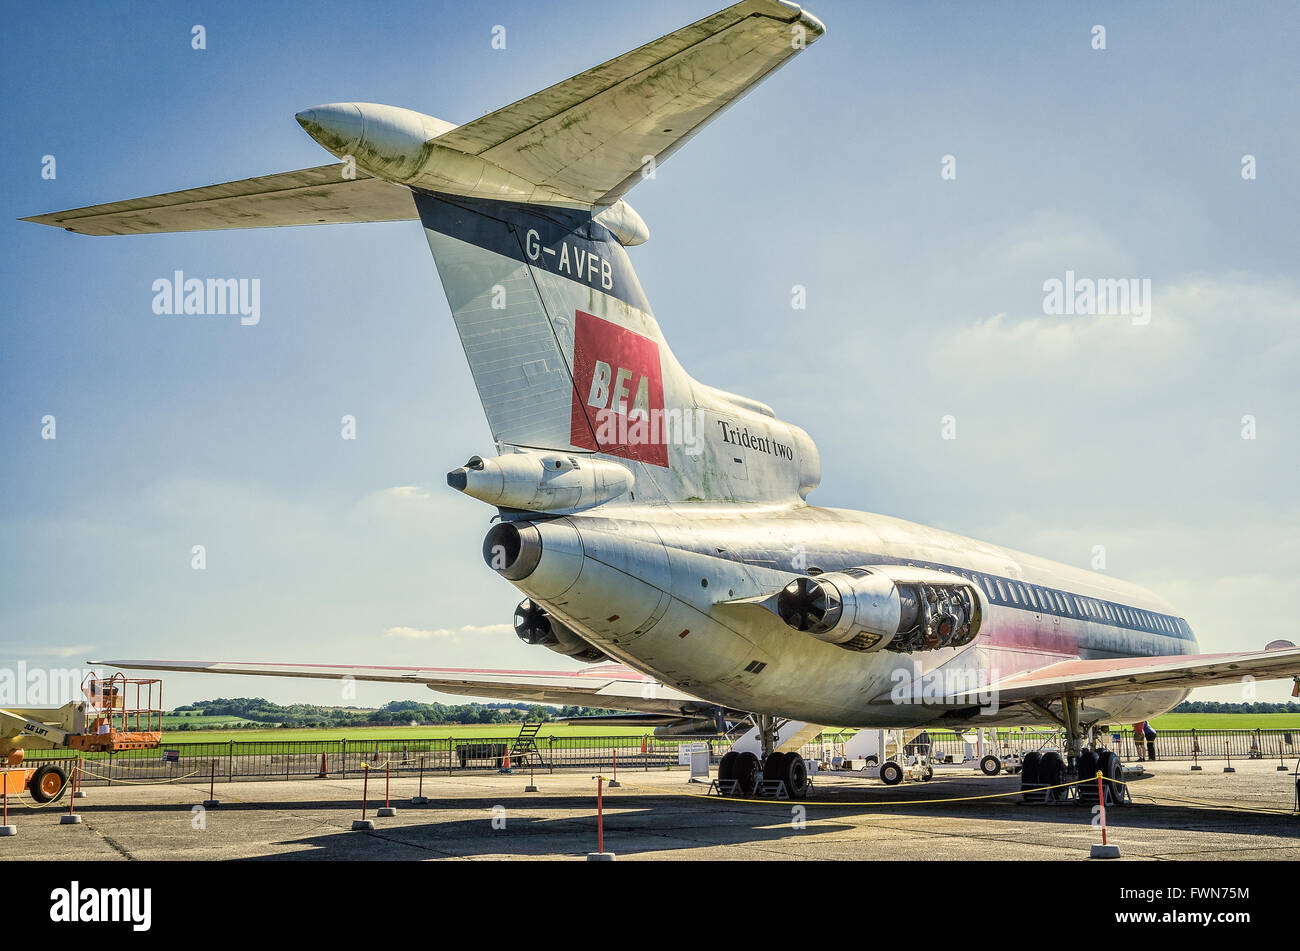 Tail view of ex-BEA Trident Twoe civil airliner on display at IWM Duxford UK - Stock Image